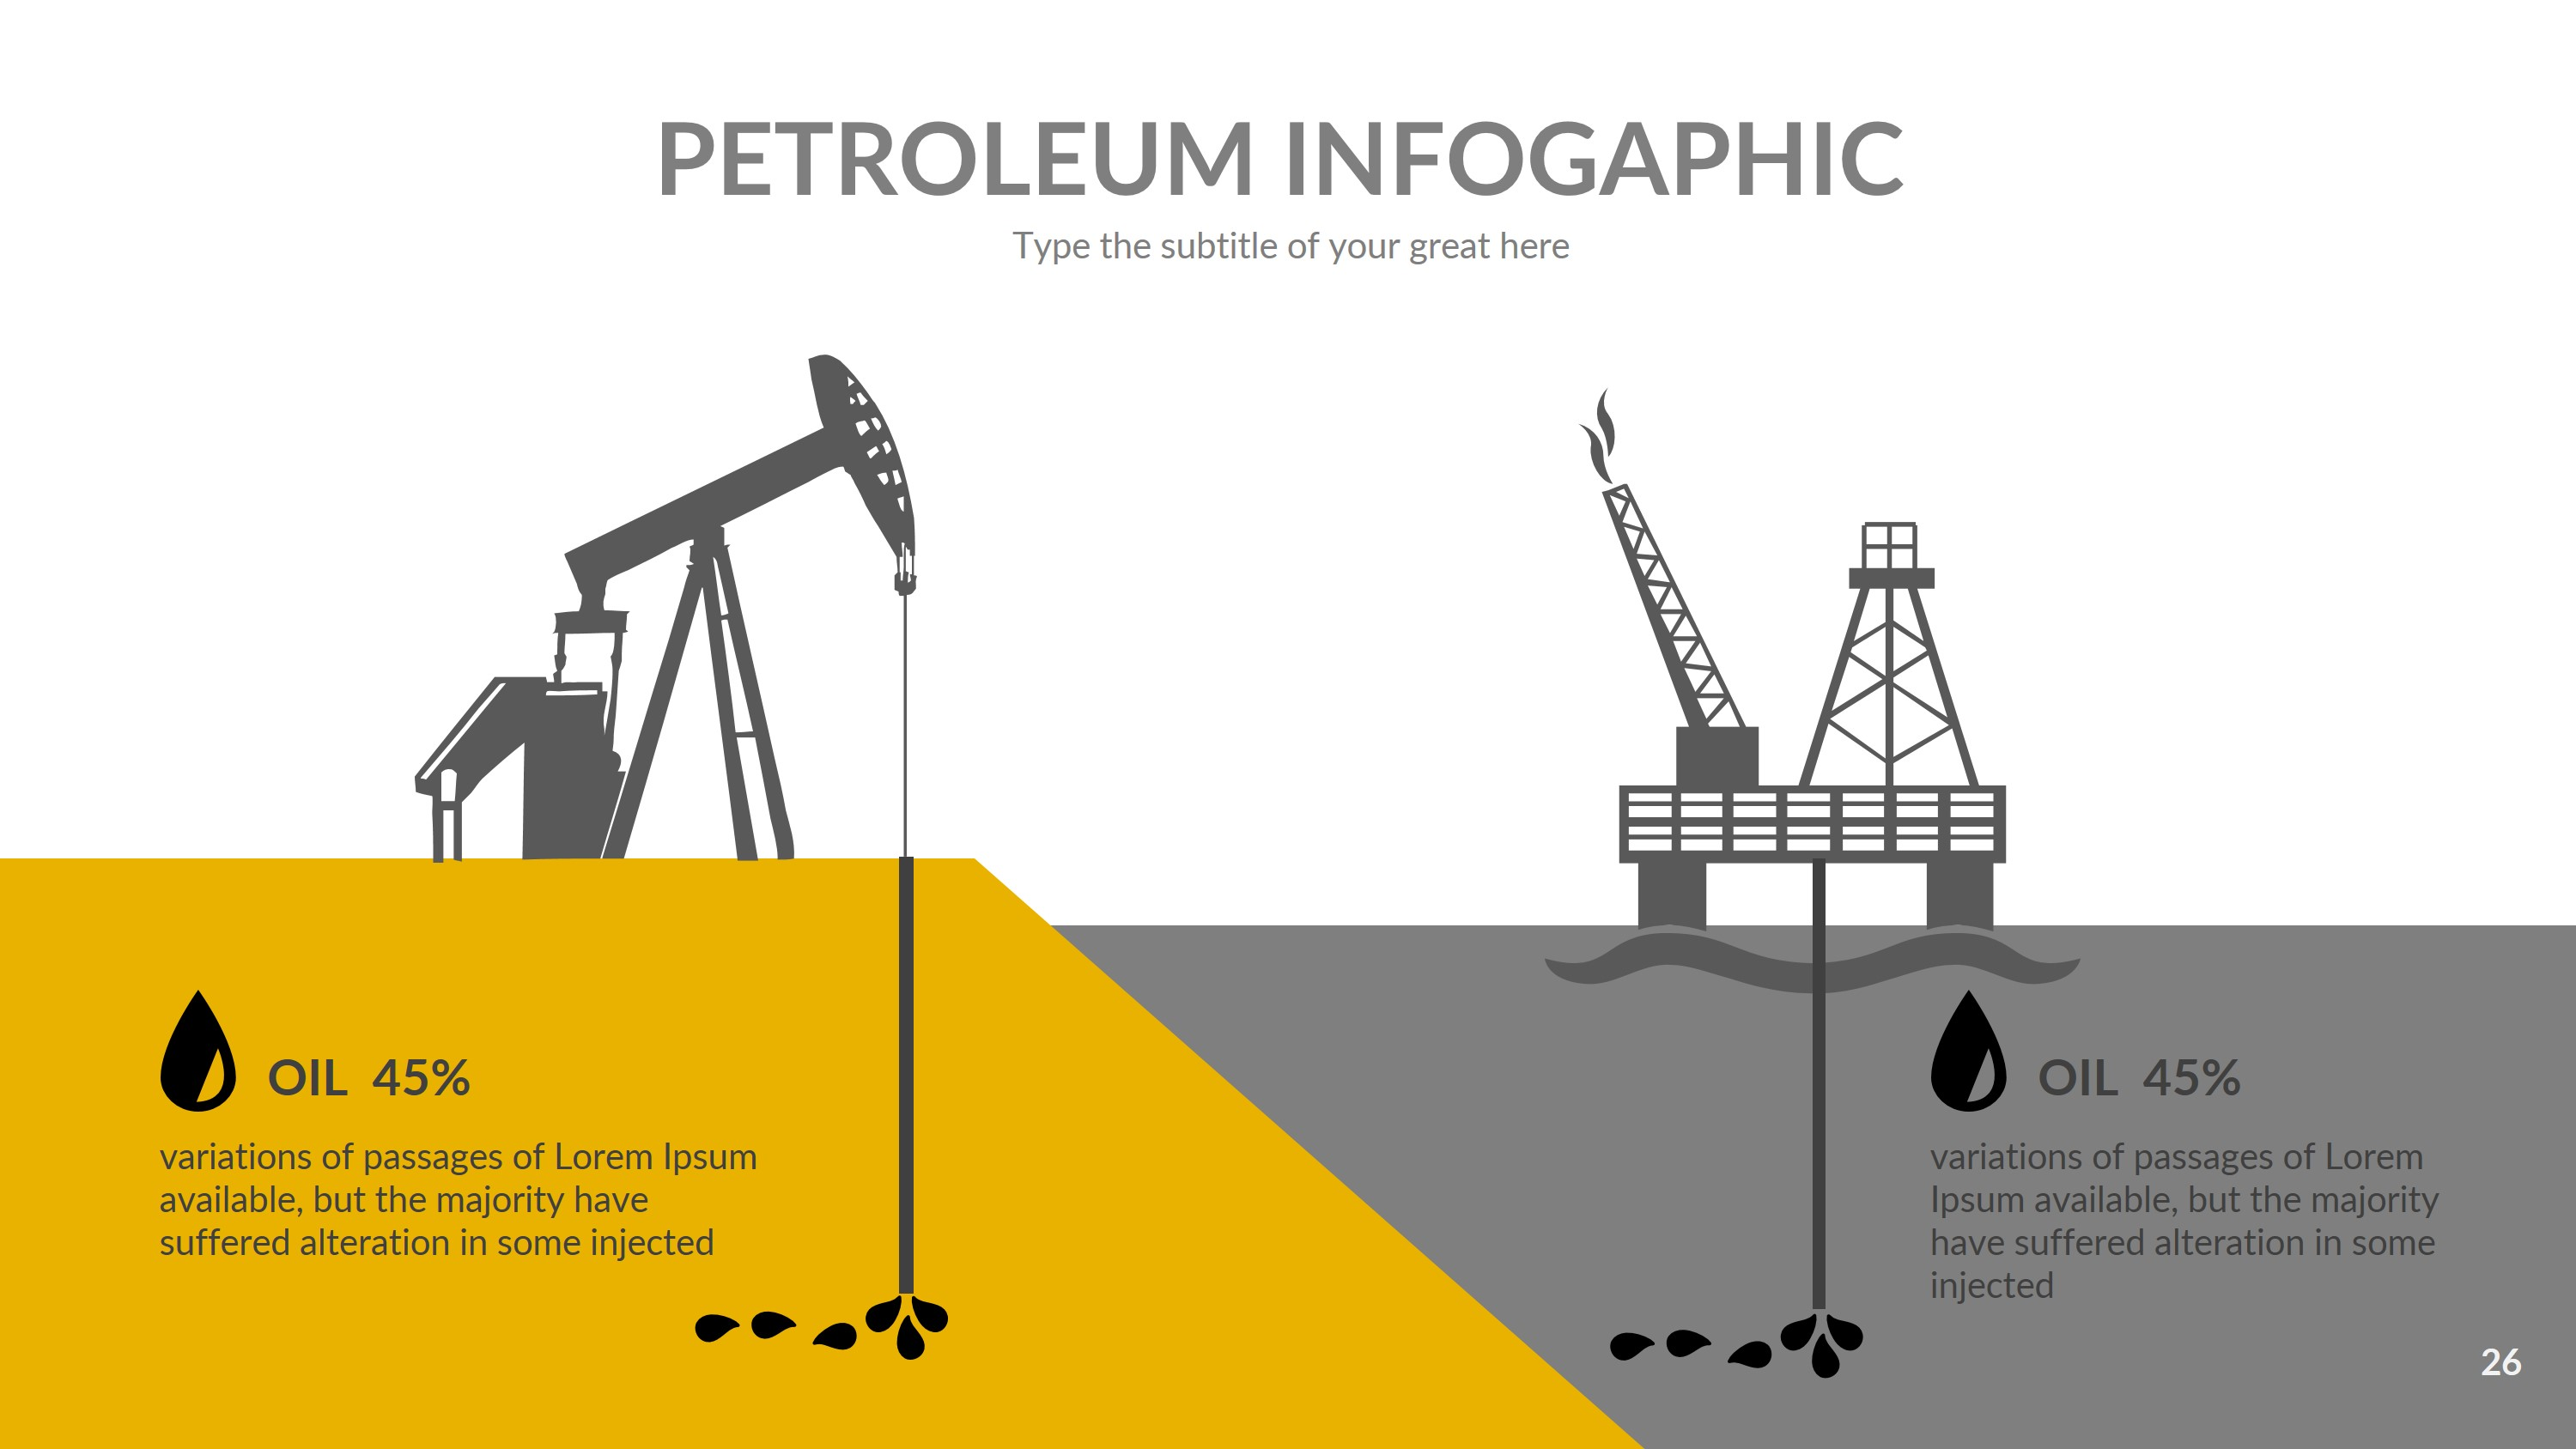 Petroleum powerpoint presentation template by rengstudio graphicriver petroleum powerpoint presentation template toneelgroepblik Images